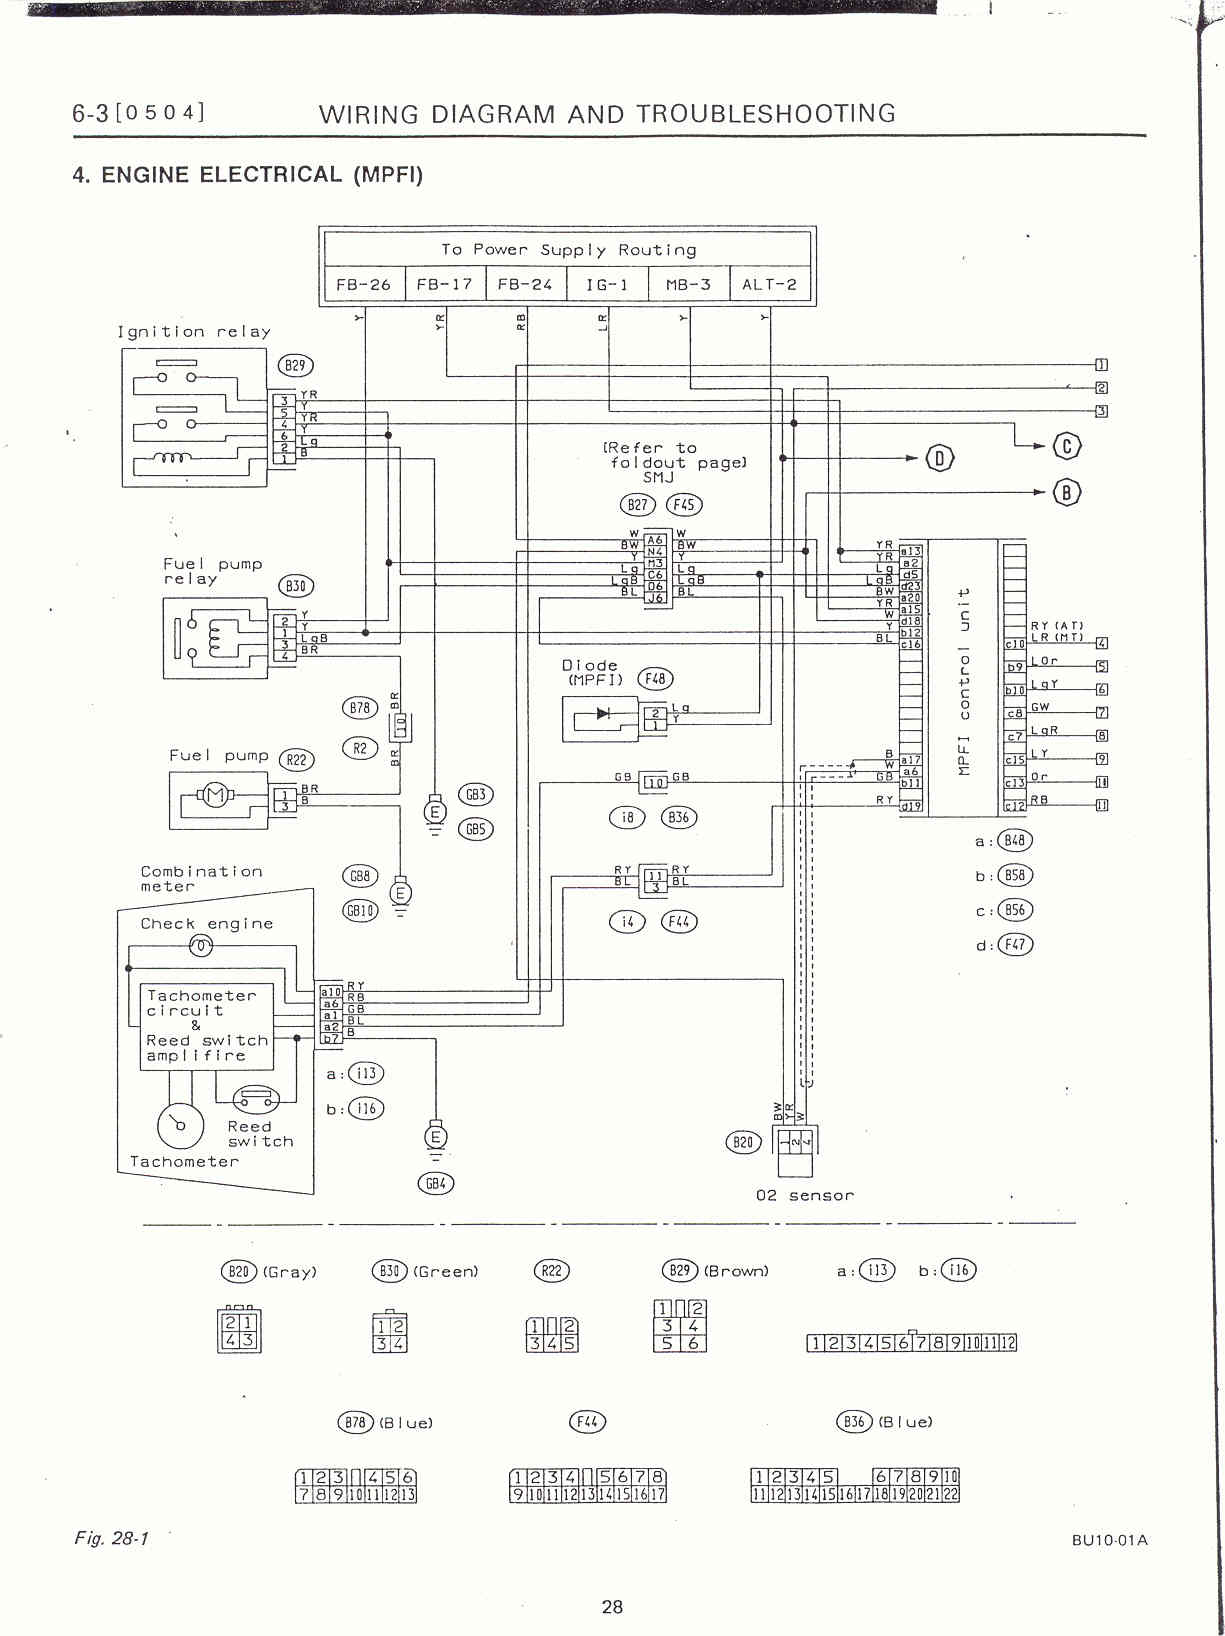 2006 subaru legacy engine diagram wiring diagramssti engine diagram wiring diagram 2006